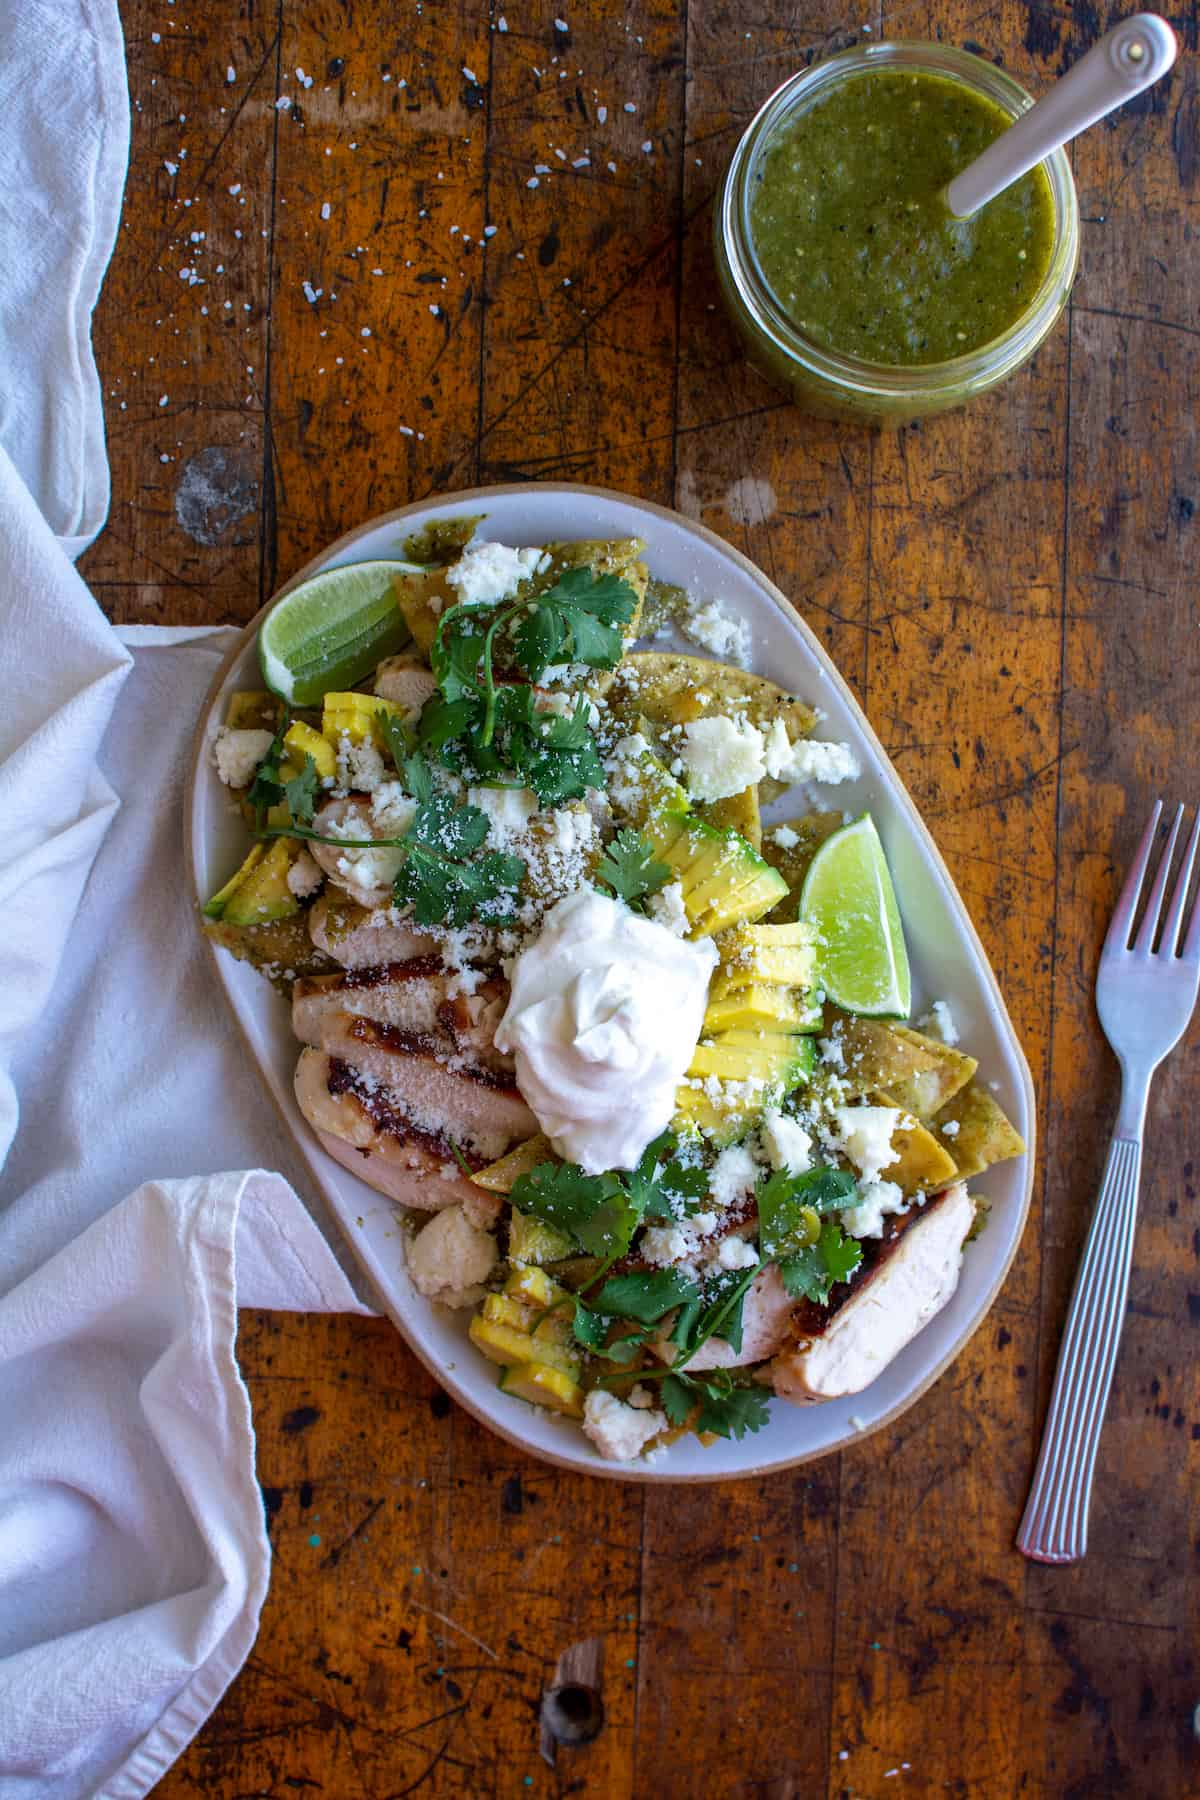 A plate of chilaquiles sitting on a wood table with a jar of salsa verde next to it.